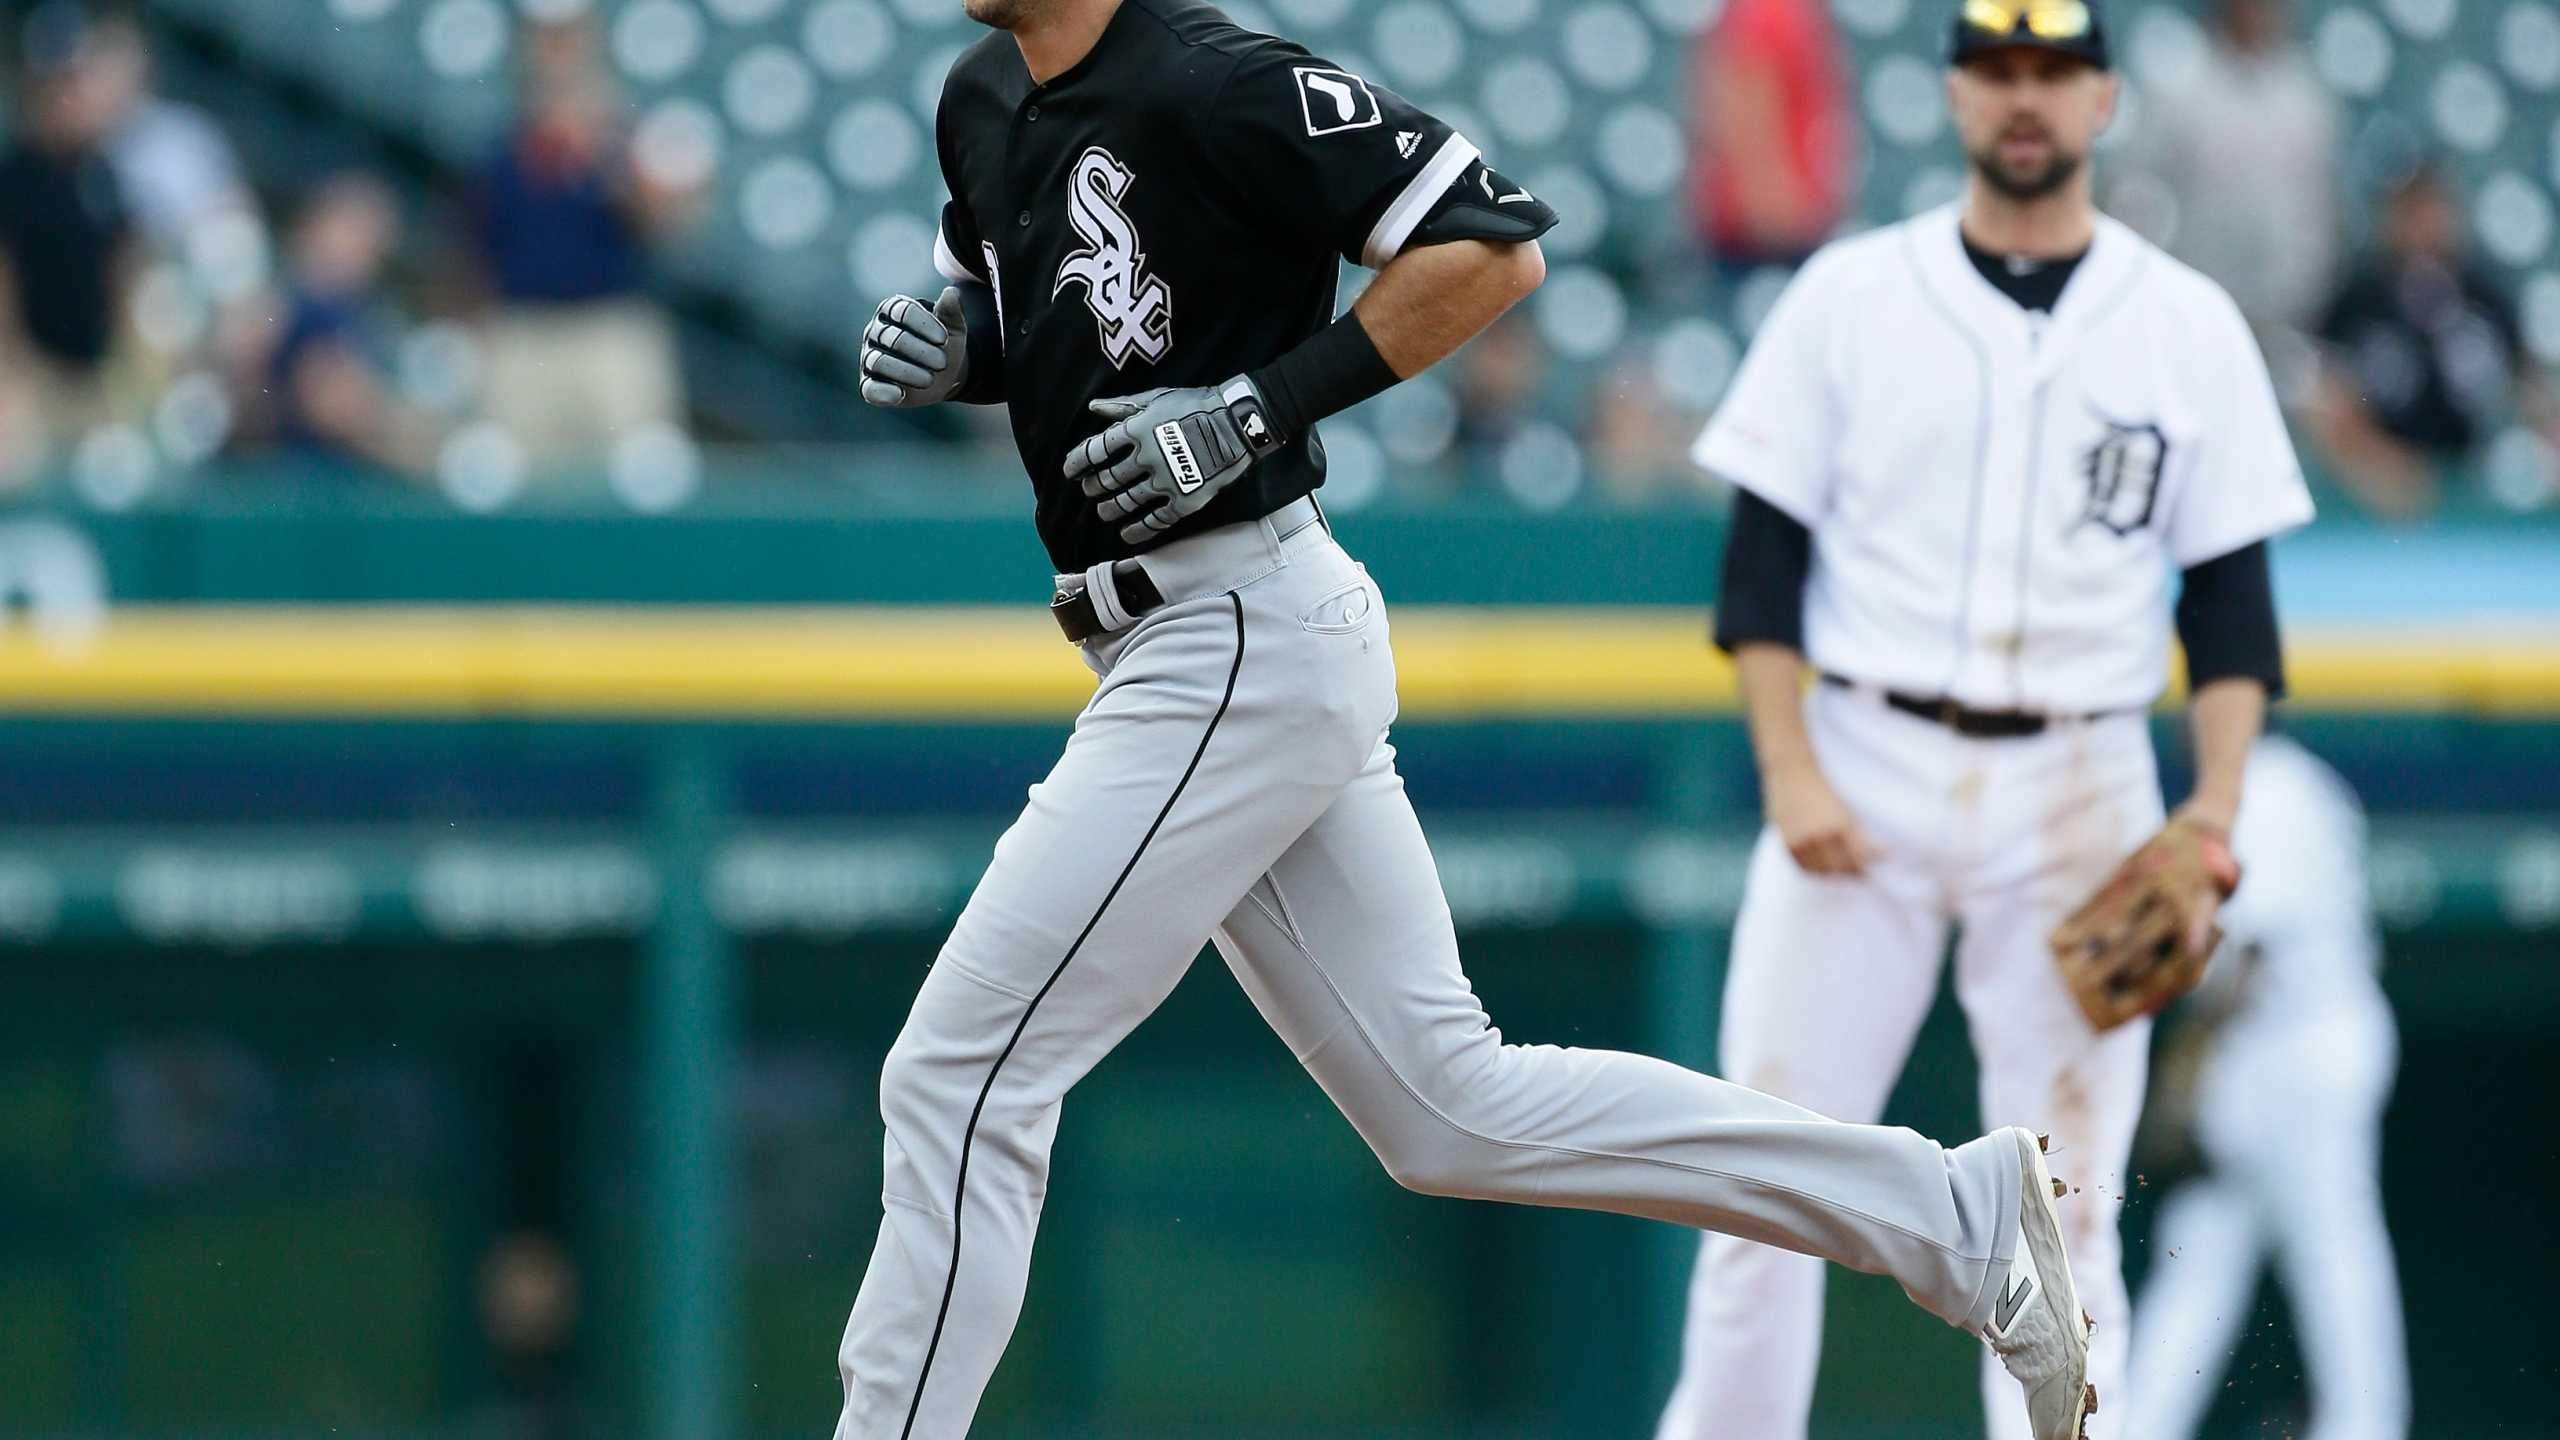 Highlights White Sox 8 Tigers 1 8 7 19 Wgn Radio 720